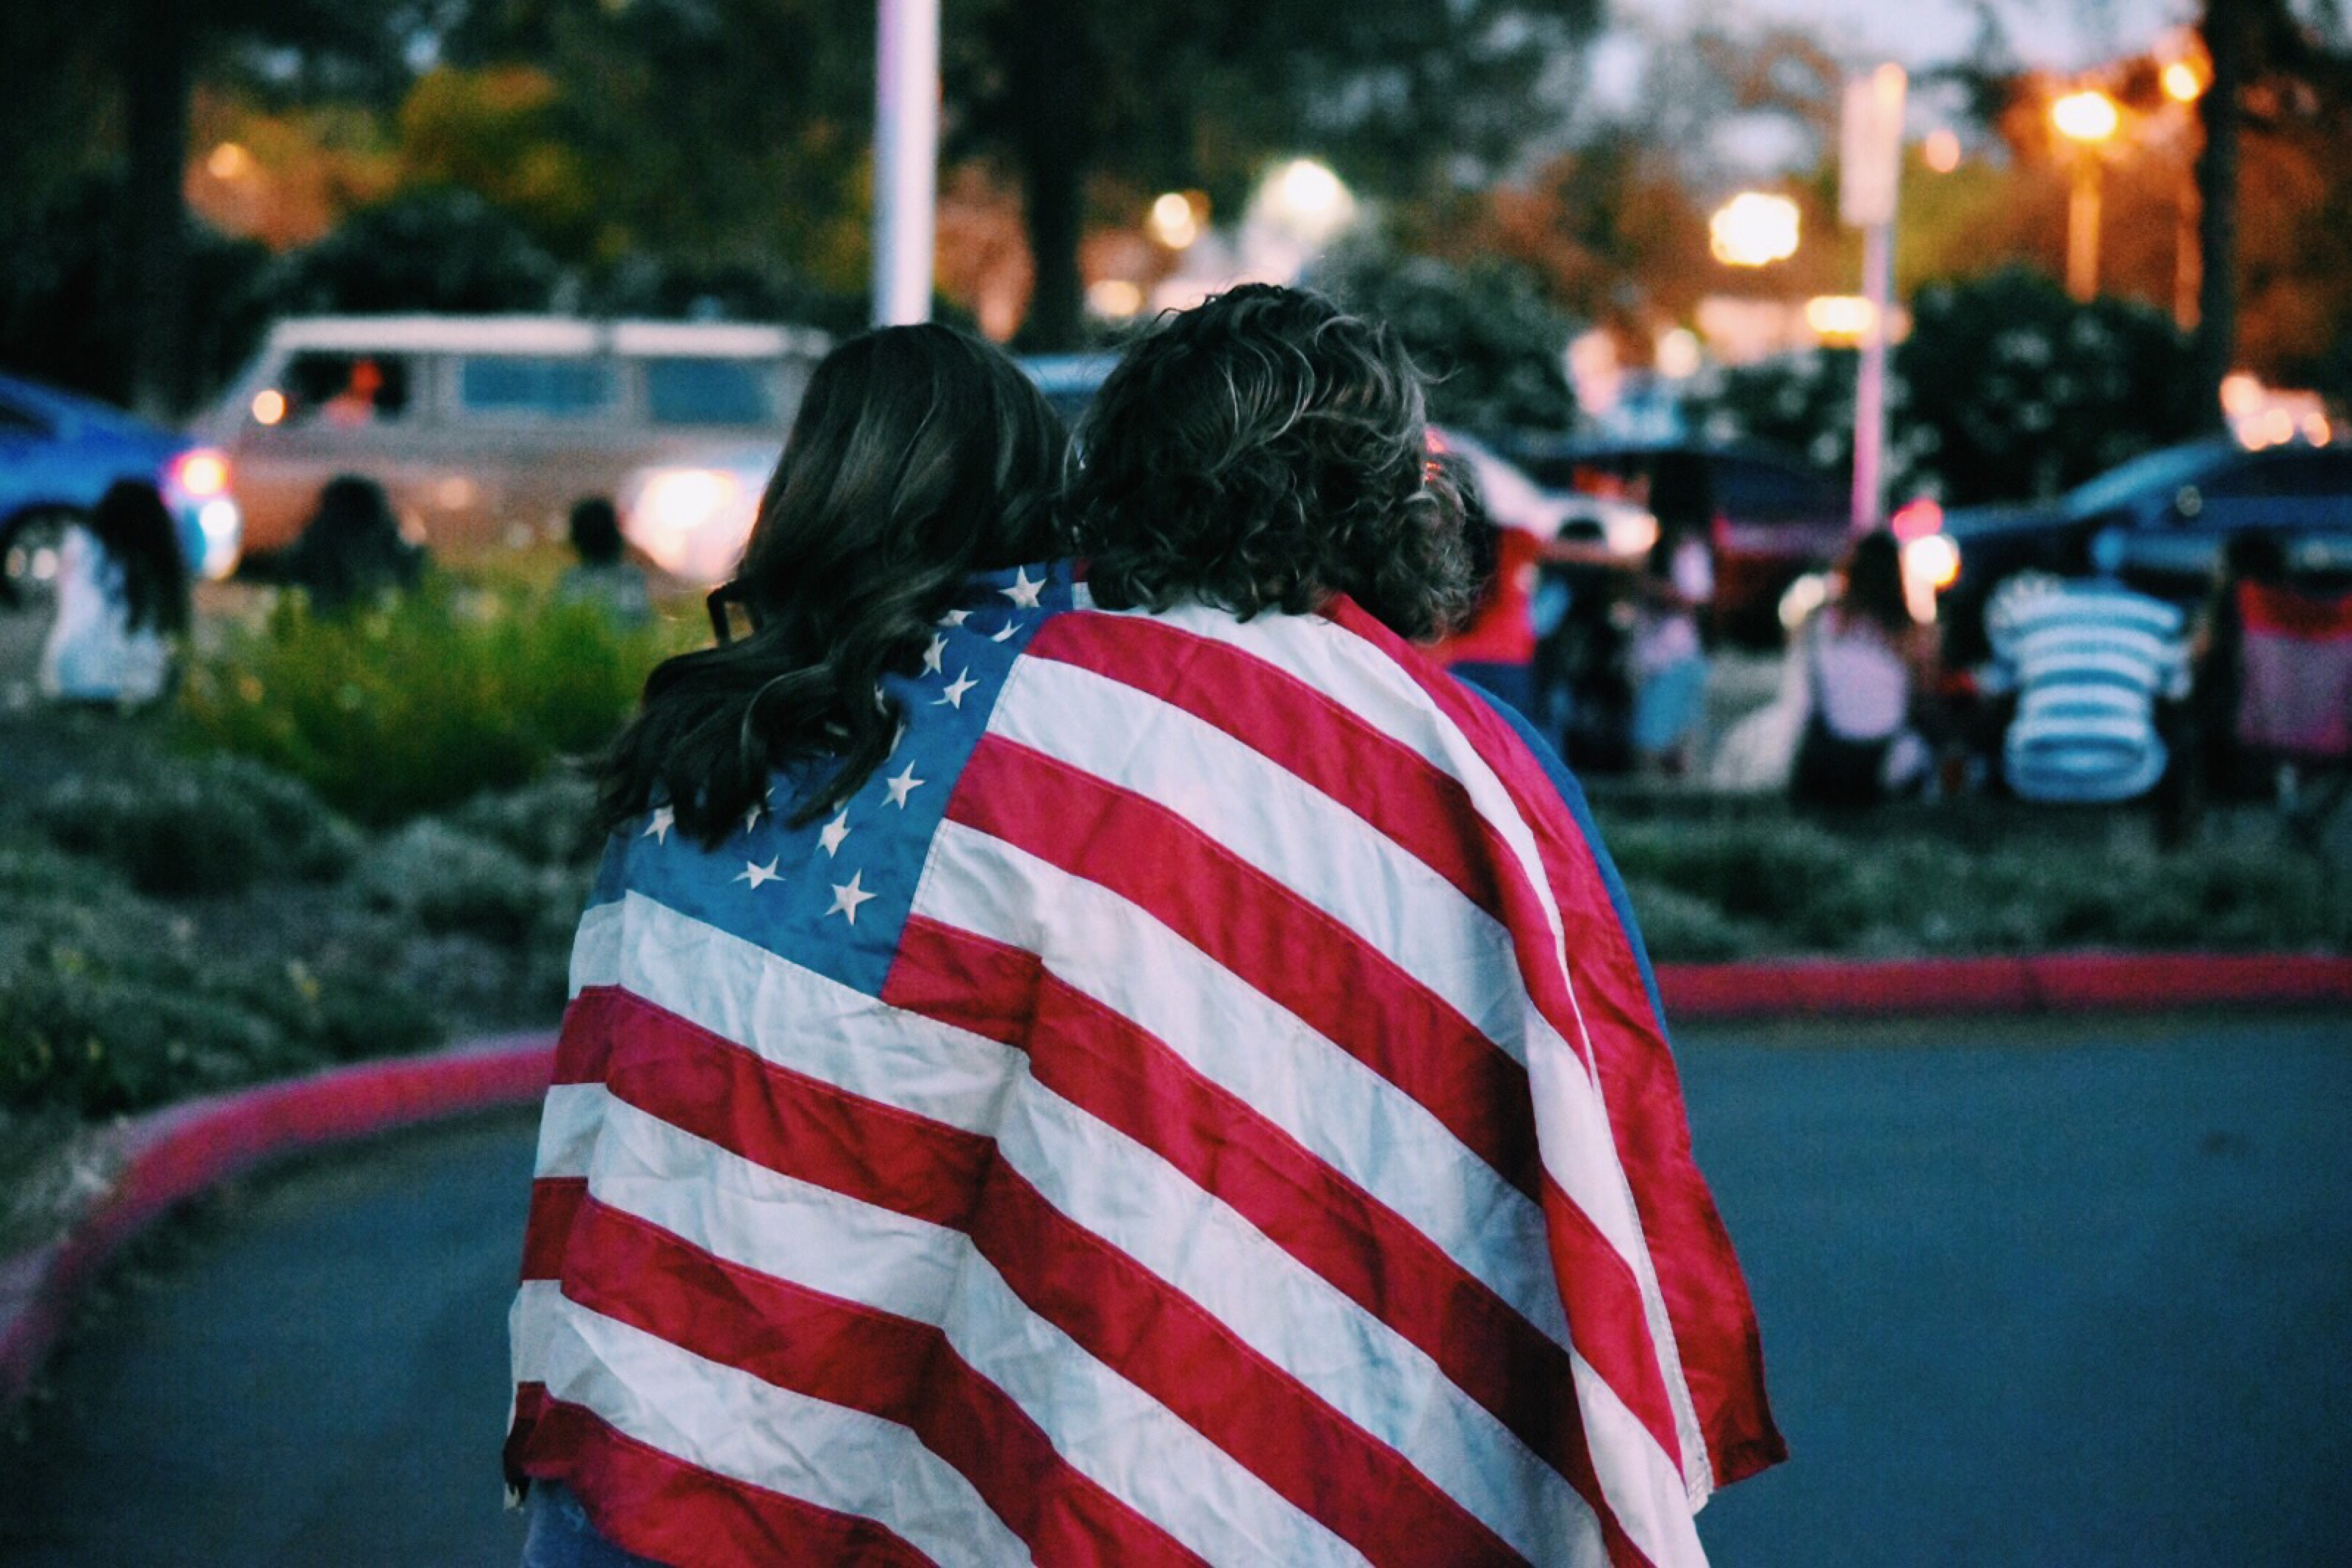 two people walk together with an American flagged draped over their shoulders